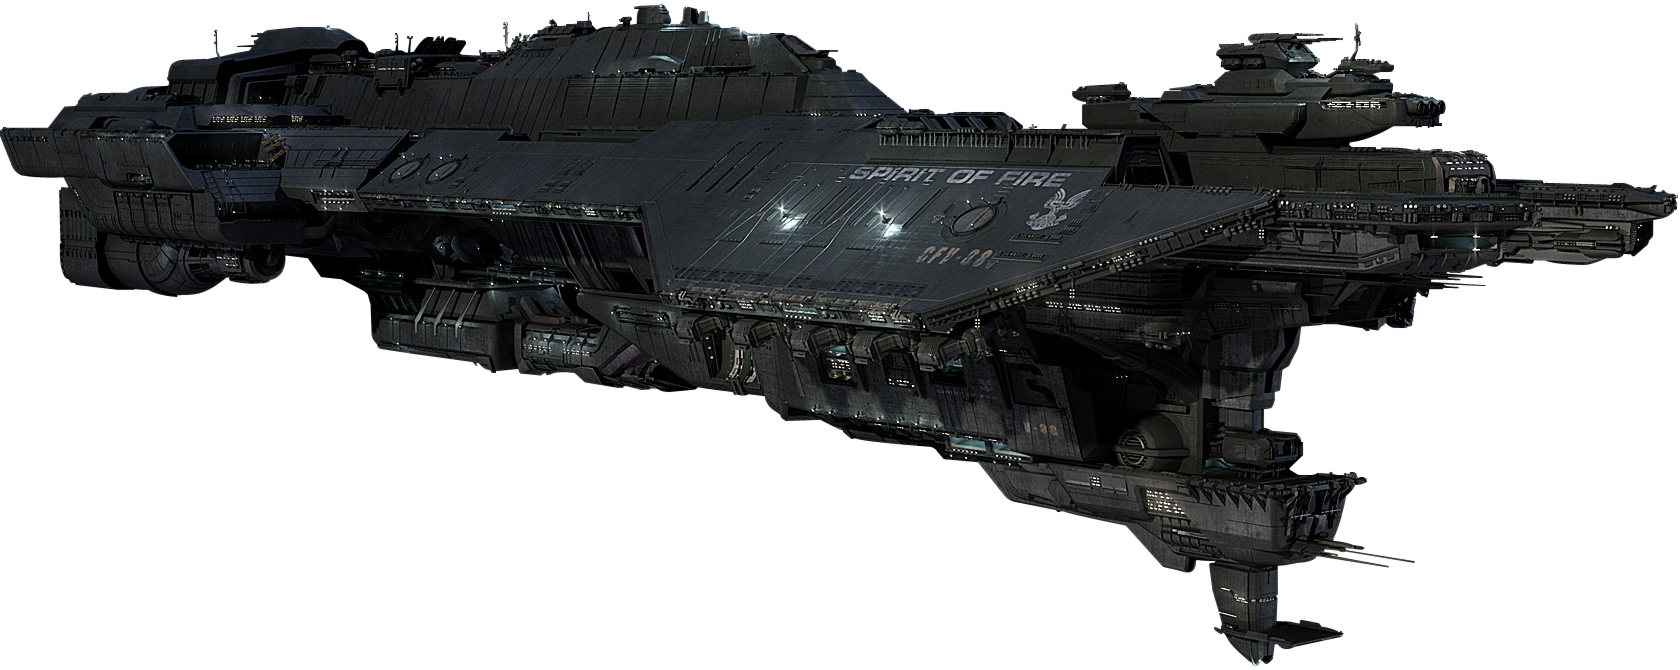 Astraeus-class Support Carrier